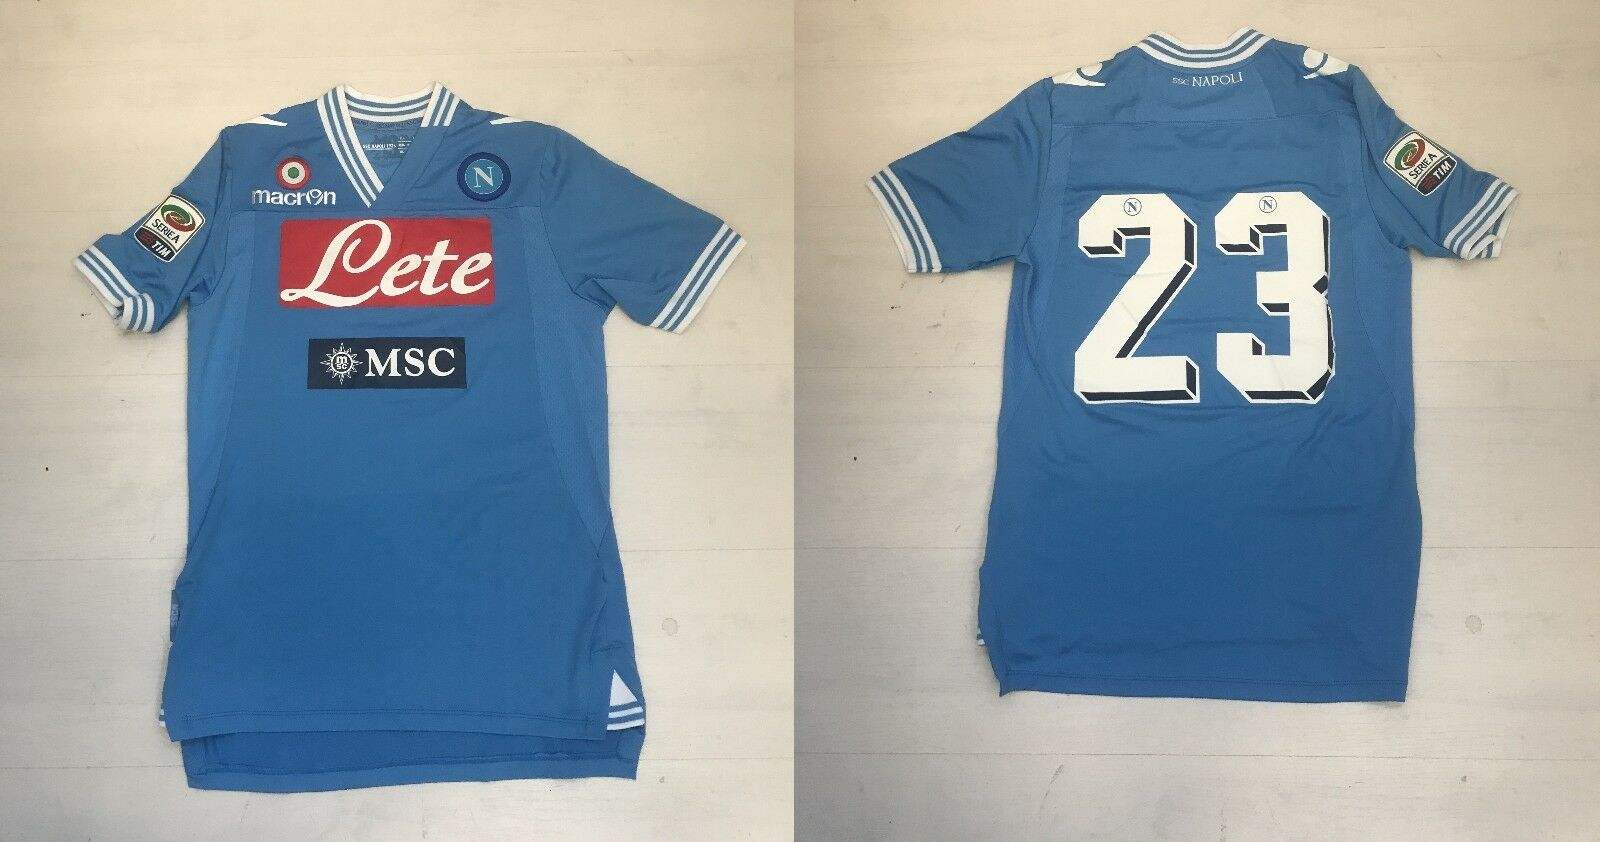 3524 MACRON NAPOLI T-SHIRT COMPETITION HOME 23 MATCH SHIRT 2013 JERSEY TRIKOT